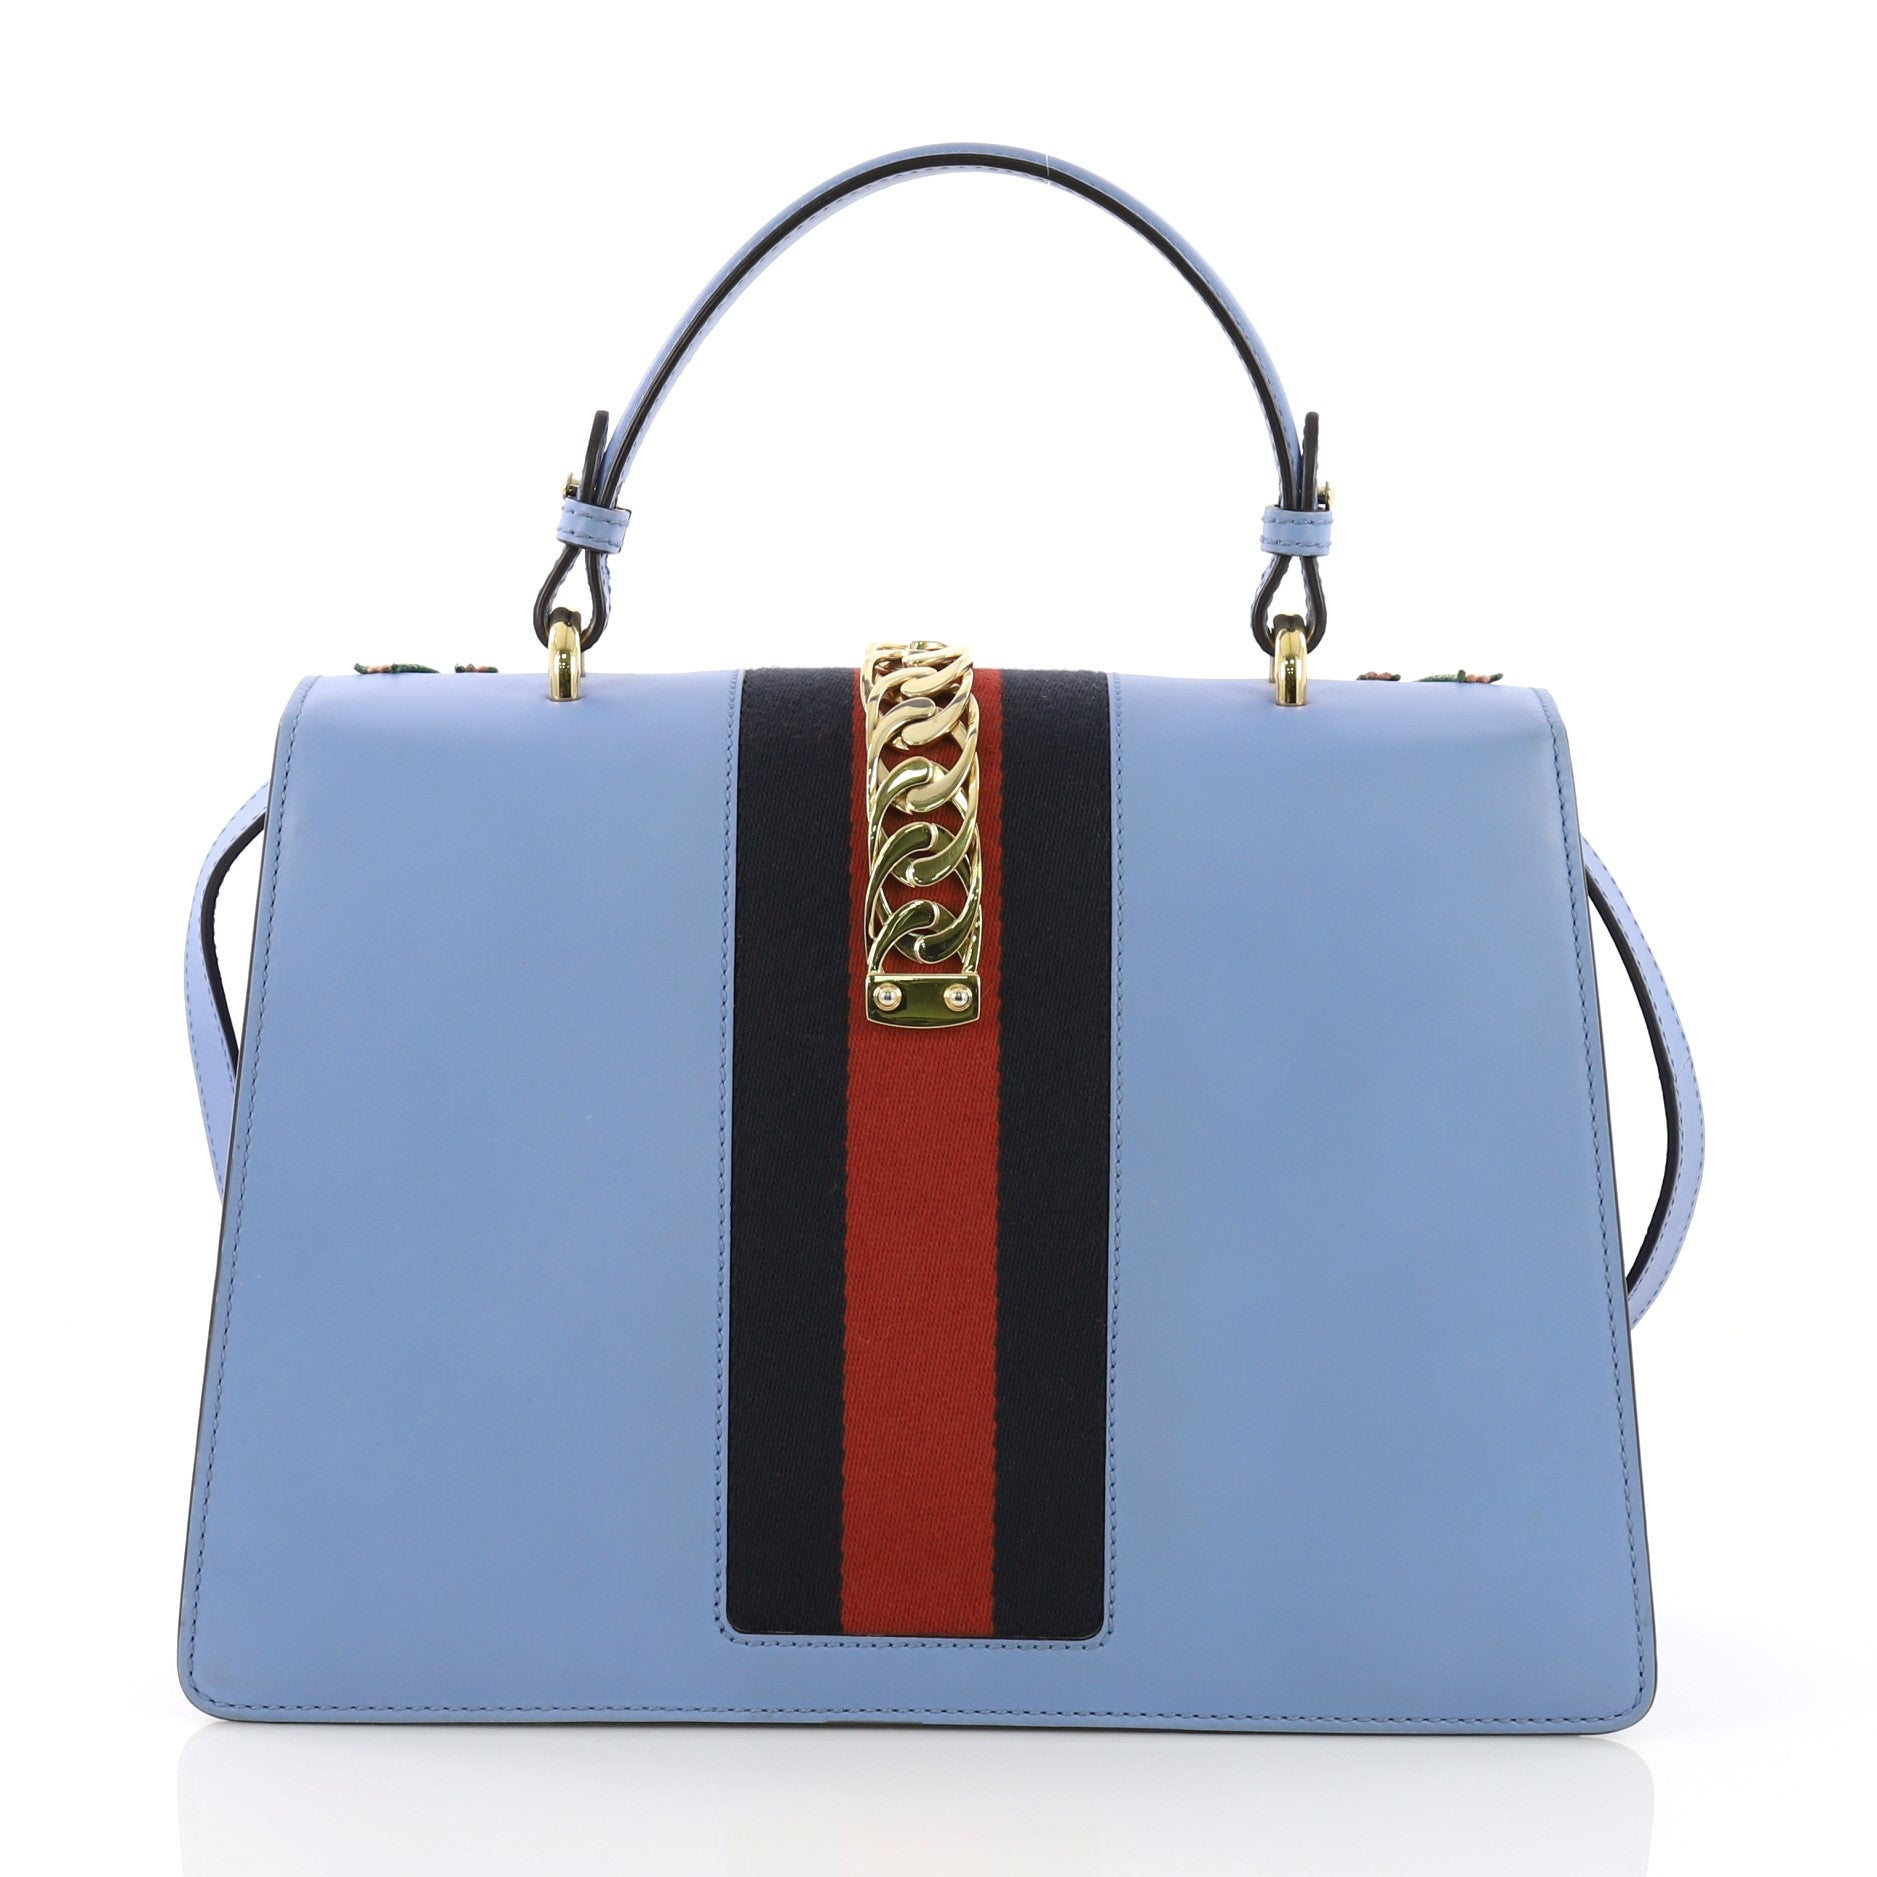 8e4c05219cd4 Gucci Sylvie Top Handle Bag Embroidered Leather Medium For Sale at 1stdibs